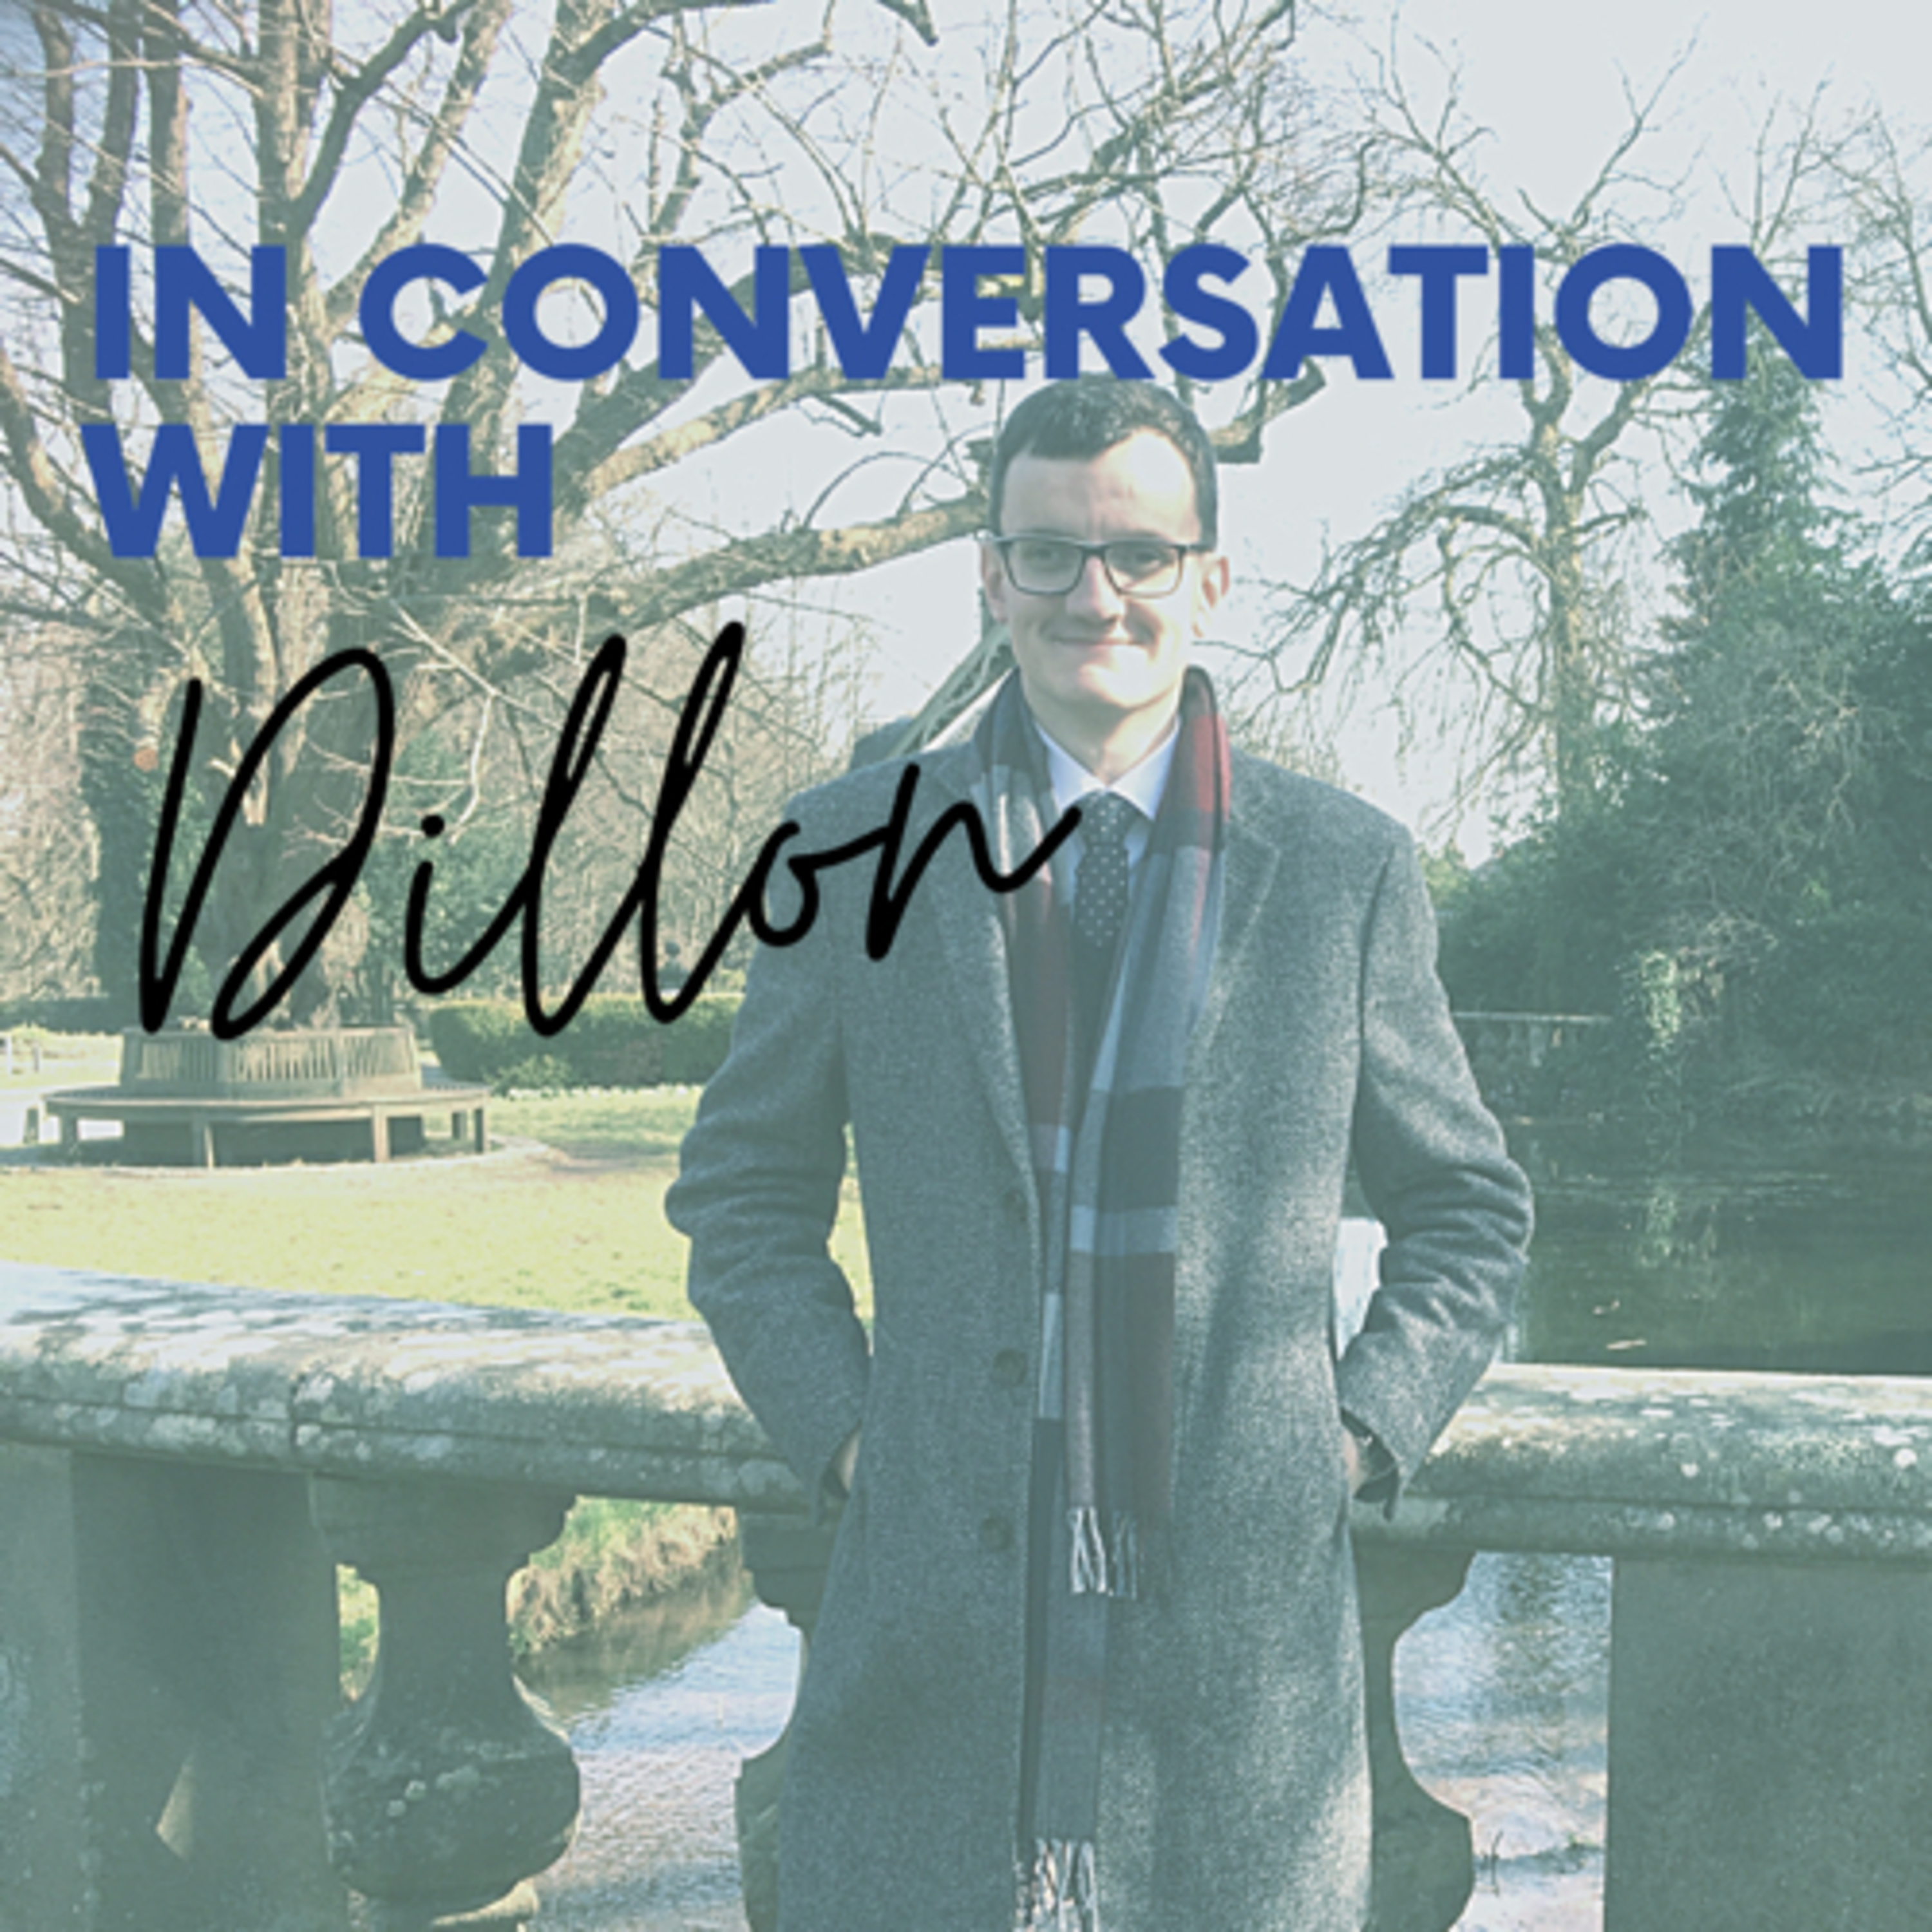 In Conversation With Dillon - Episode 1